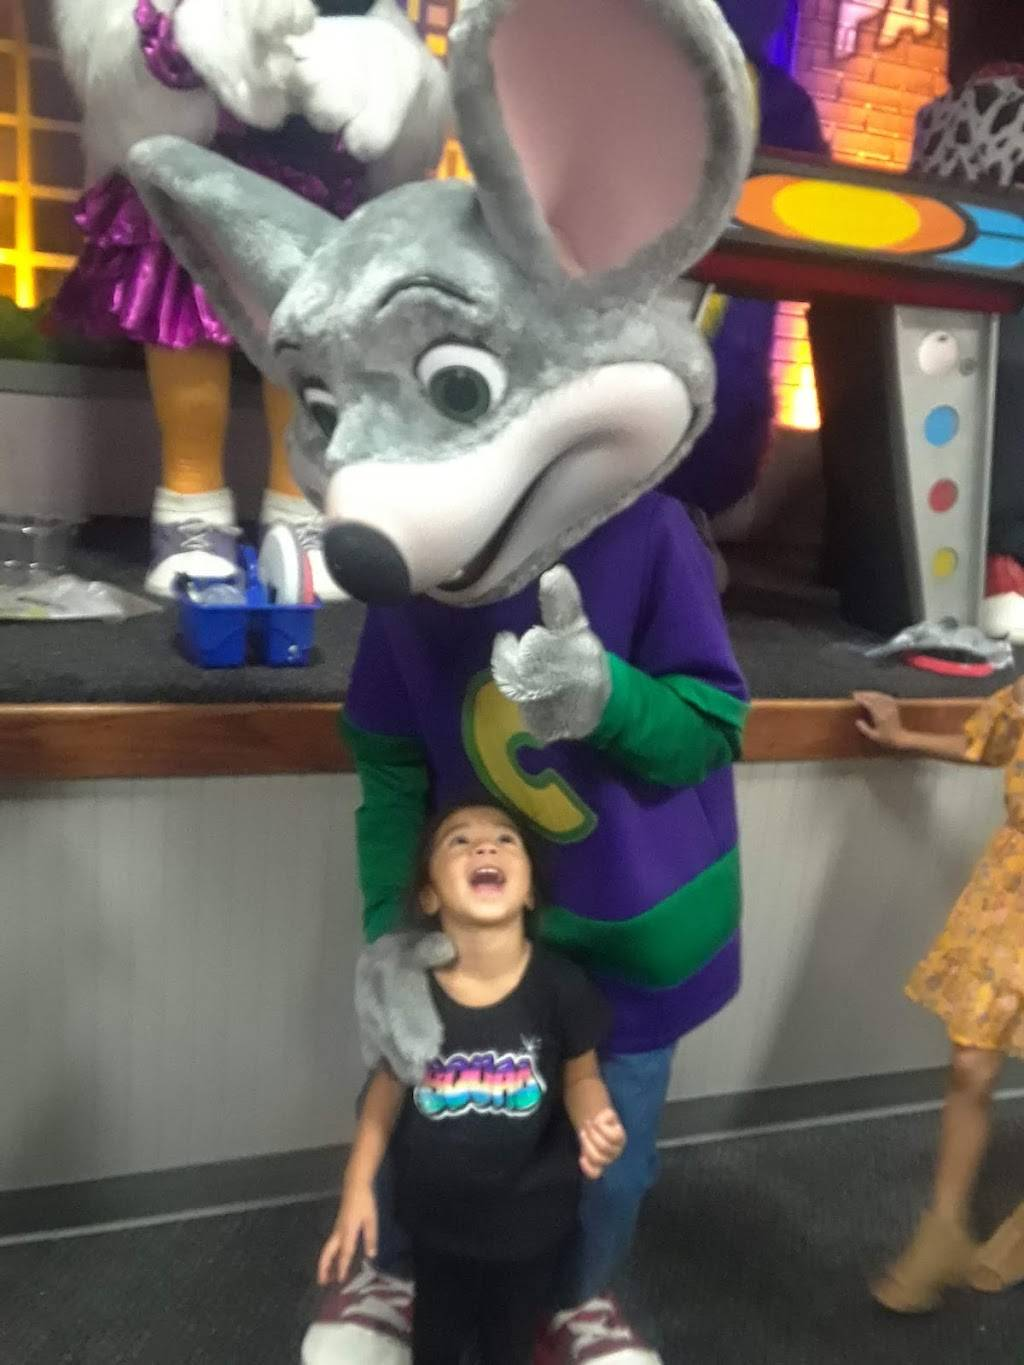 Chuck E. Cheeses | restaurant | 1690-96 Arden Way, Sacramento, CA 95815, USA | 9169209181 OR +1 916-920-9181